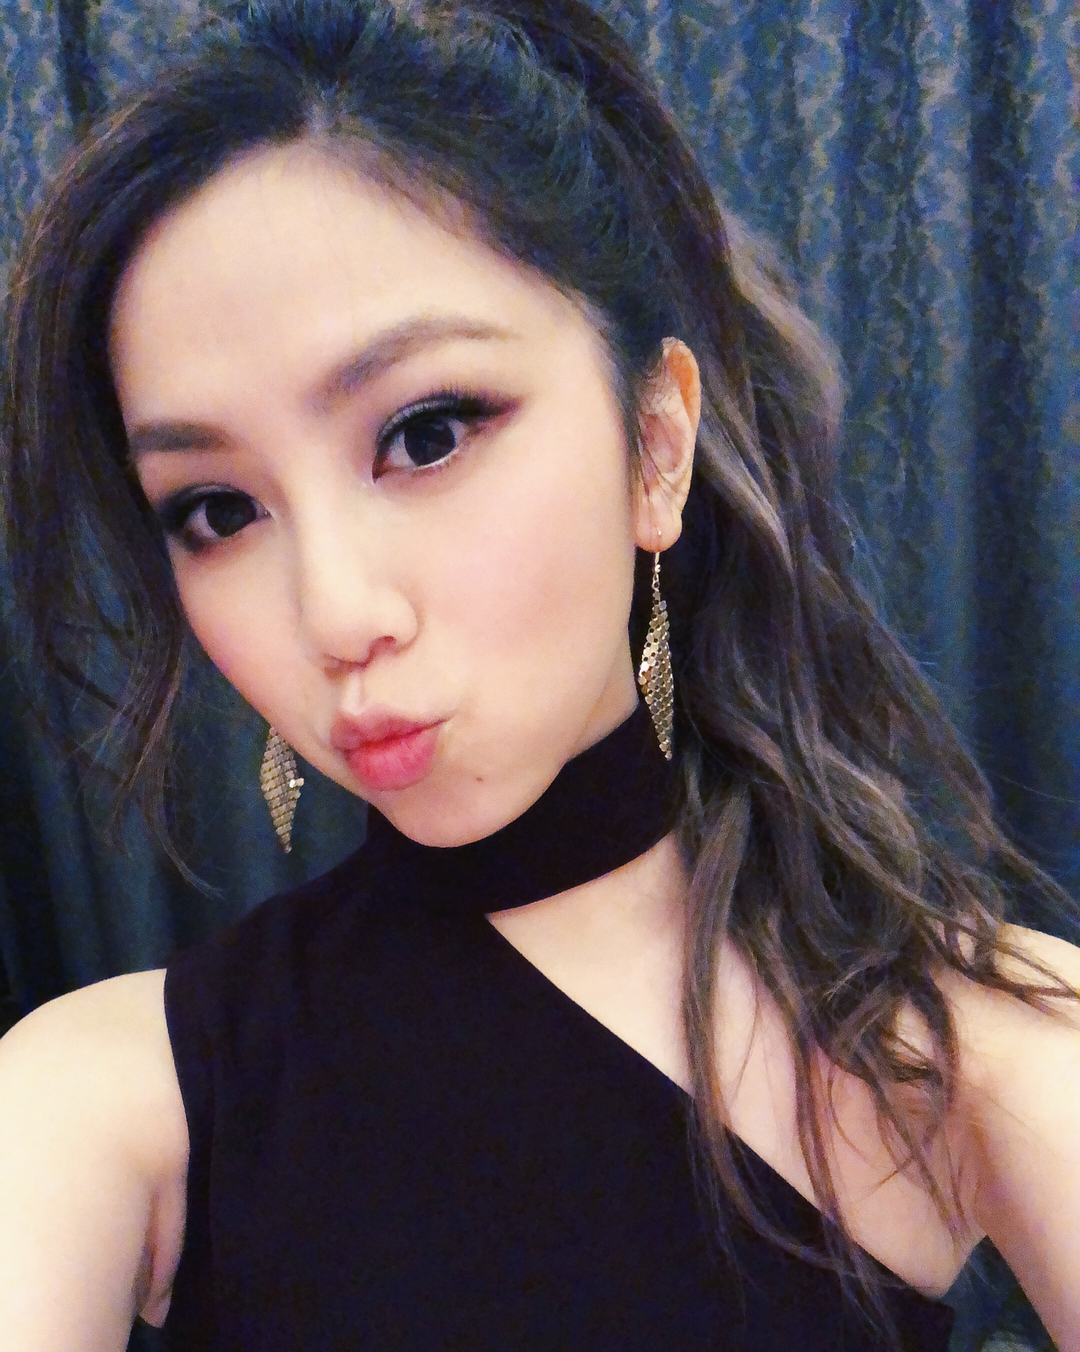 G.E.M. net worth